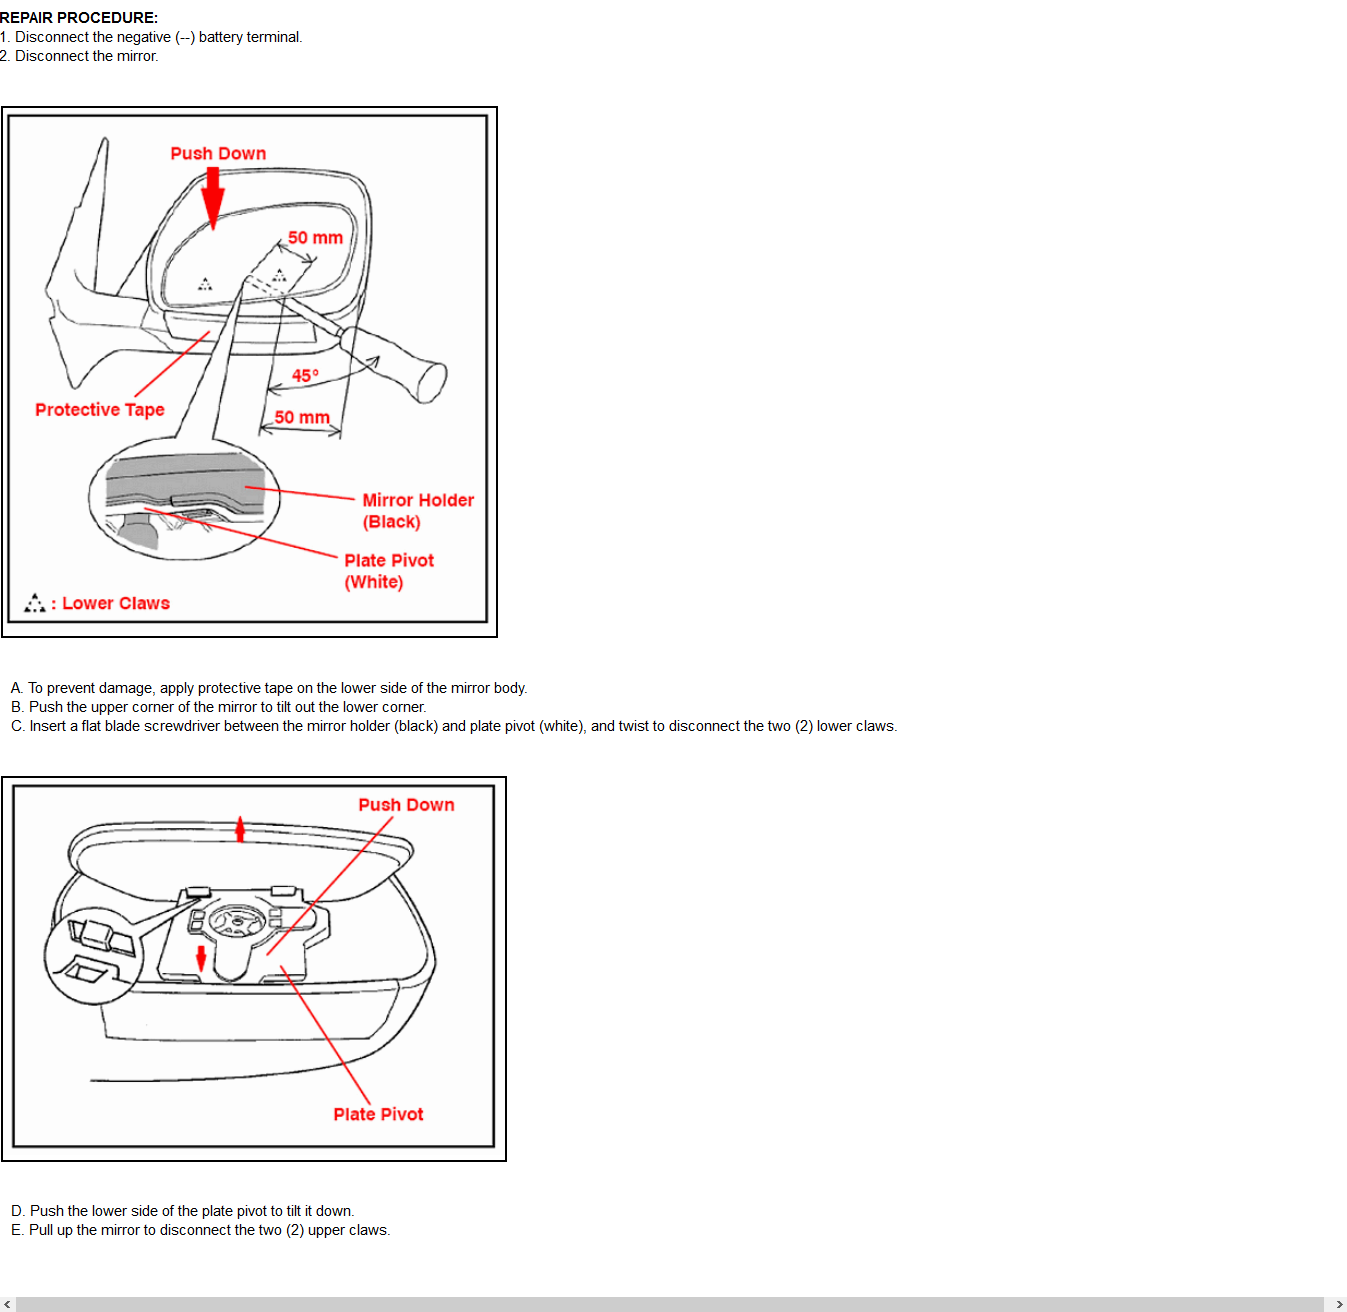 Lexus Rx330 Mirror Diagram Basic Guide Wiring How Do I Replace Just The Glass On Passenger Side 2004 Rh Justanswer Com 2005